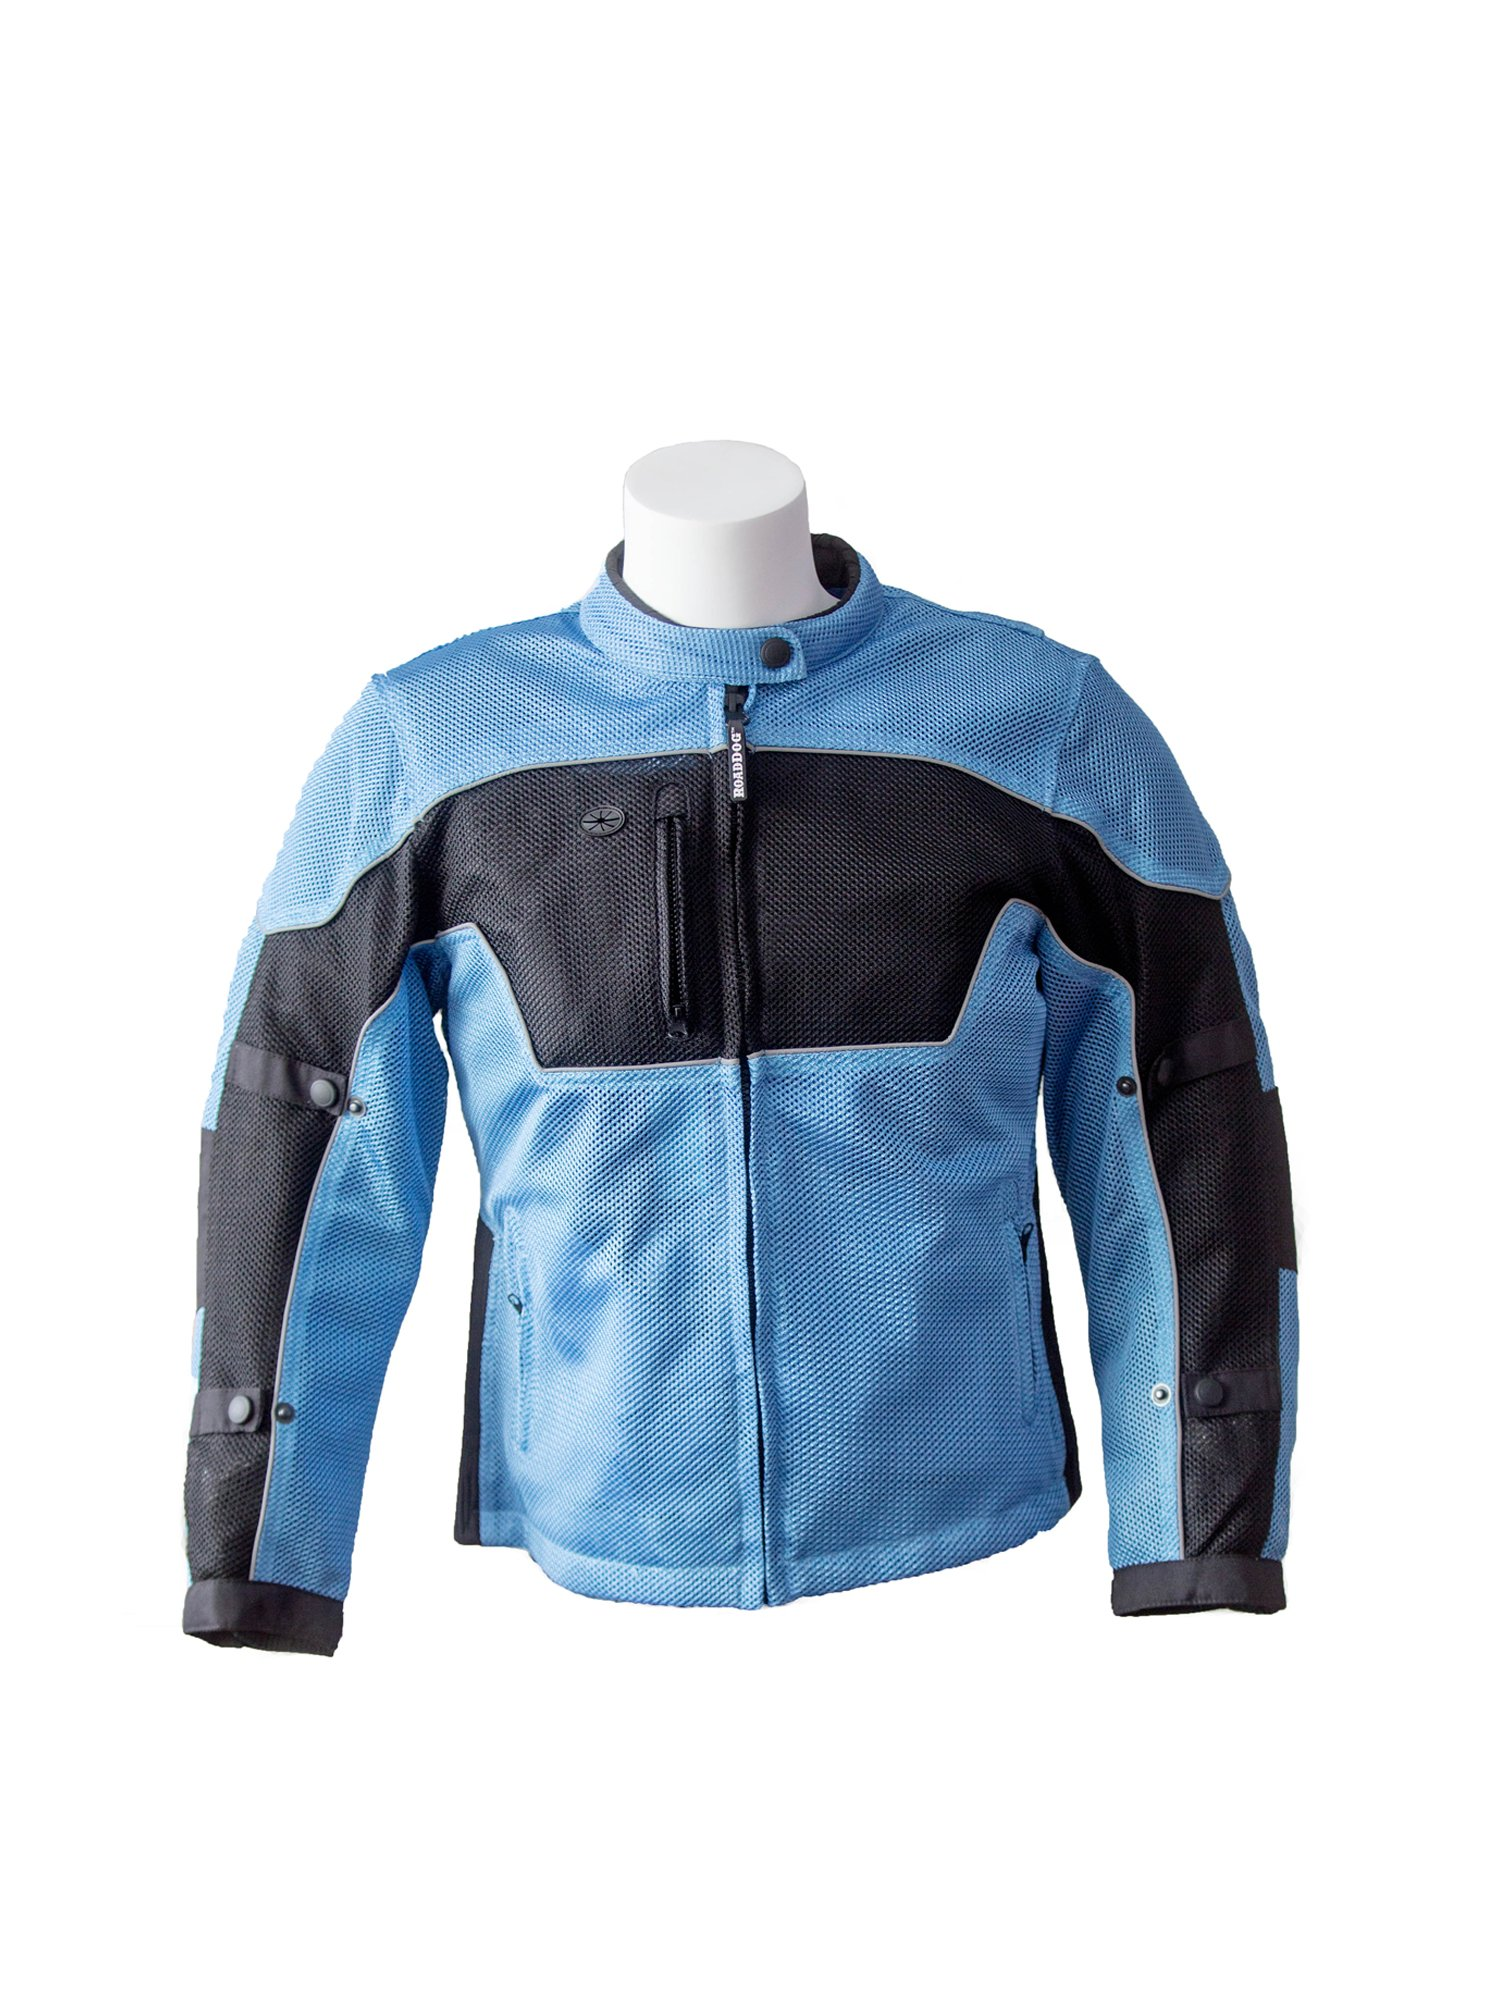 RoadDog Hurricane Mesh Motorcycle Riding Jacket Powder Blue Women's Large